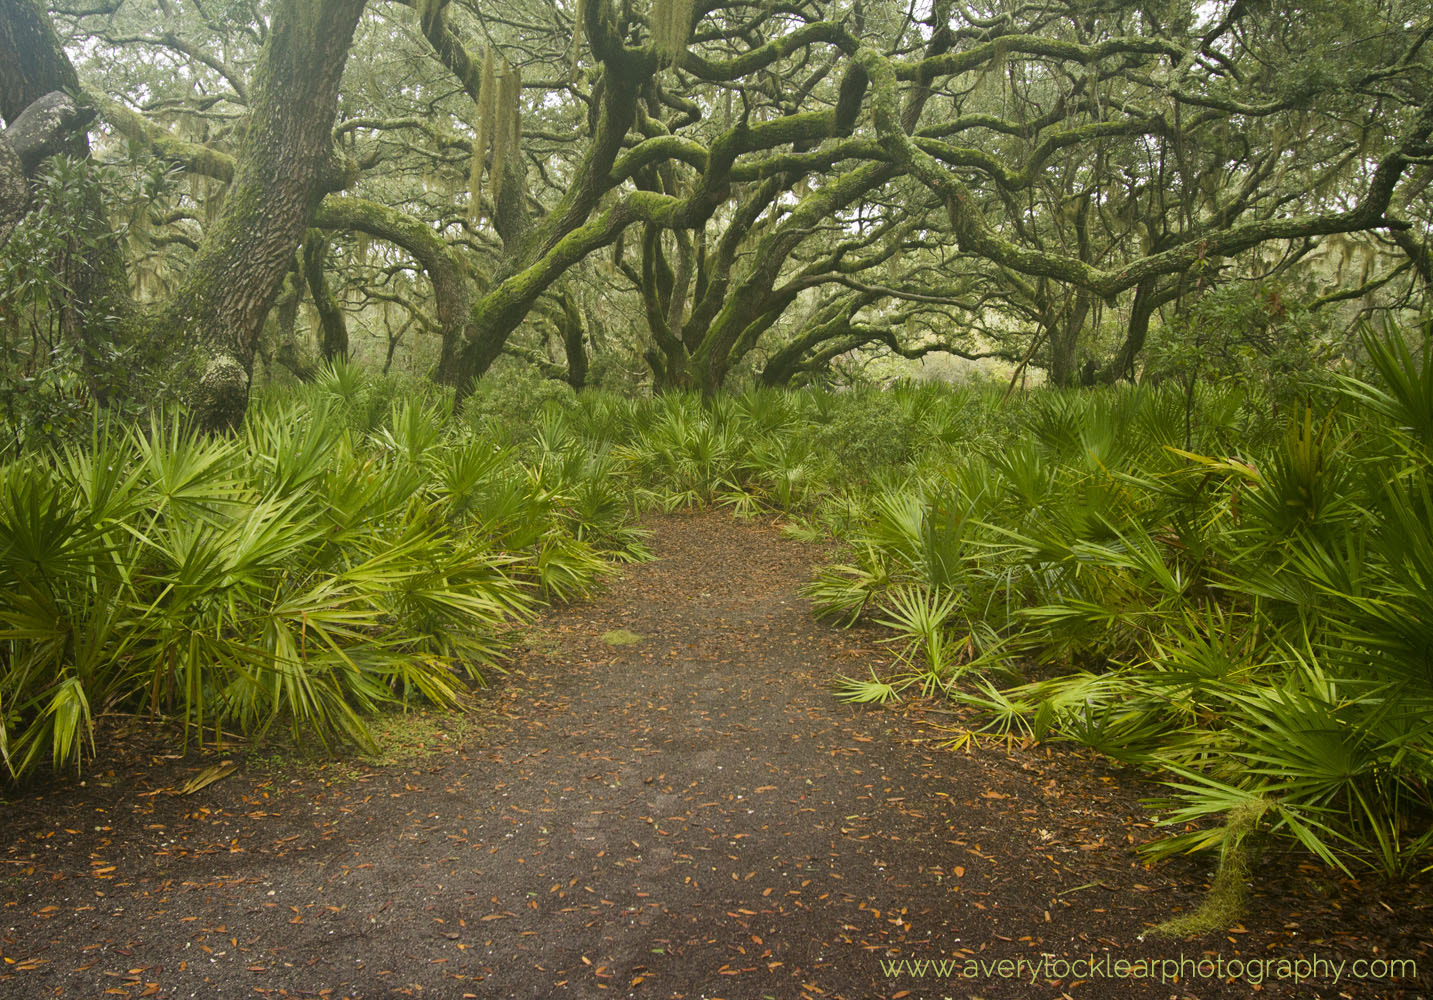 Photograph Lush Maritime Forest by Avery Locklear on 500px